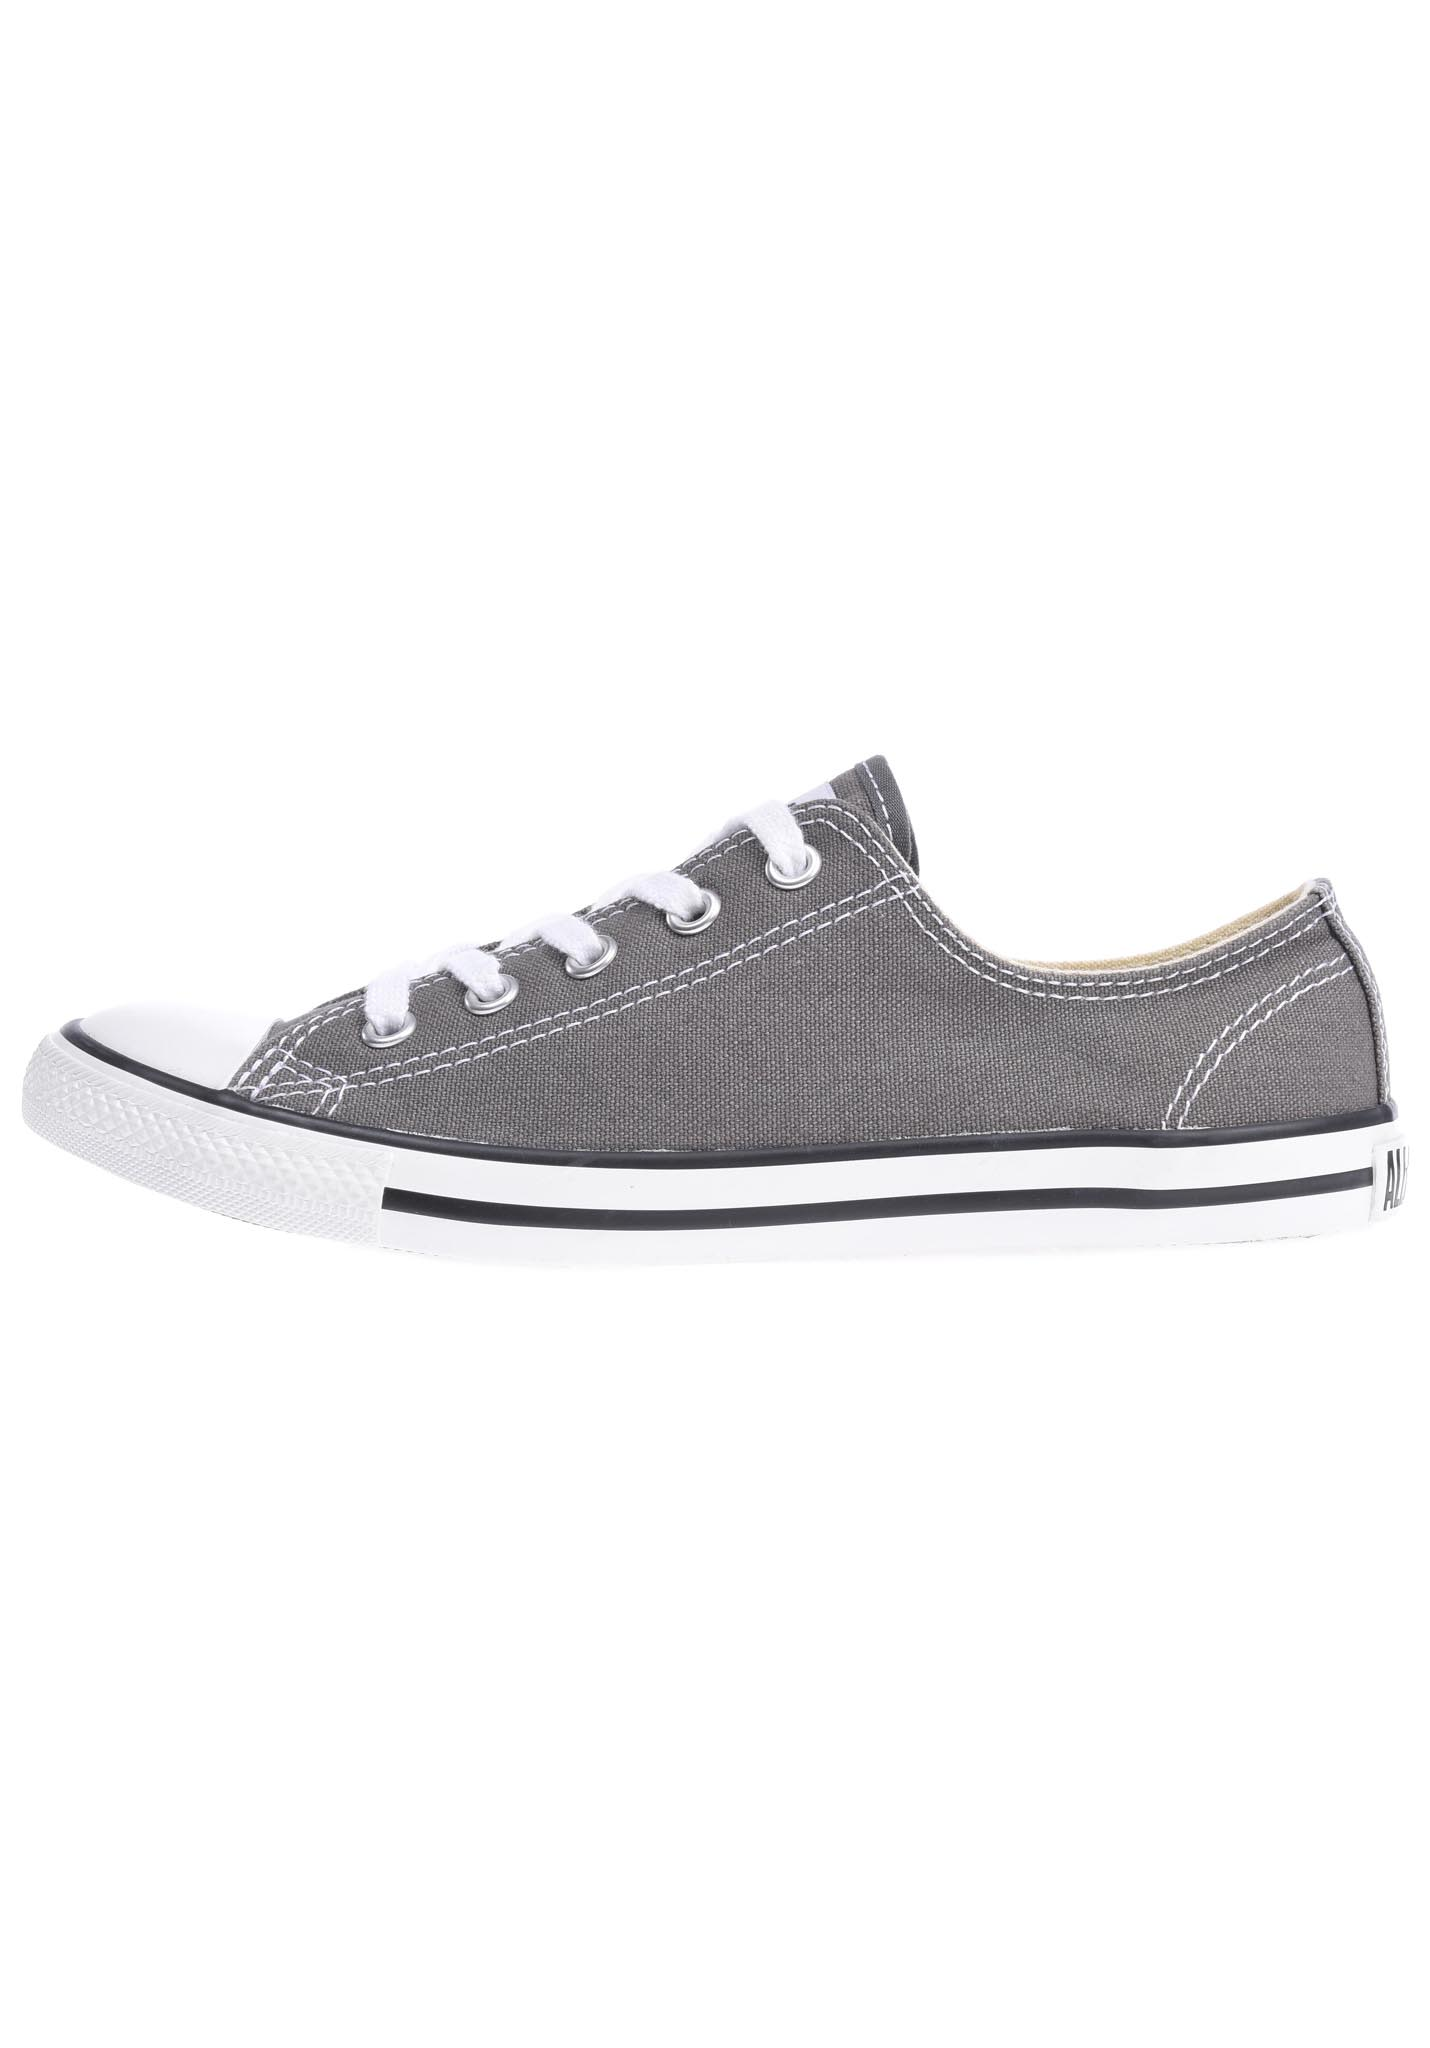 Converse CT All Star Dainty Ox White 537204C #converse